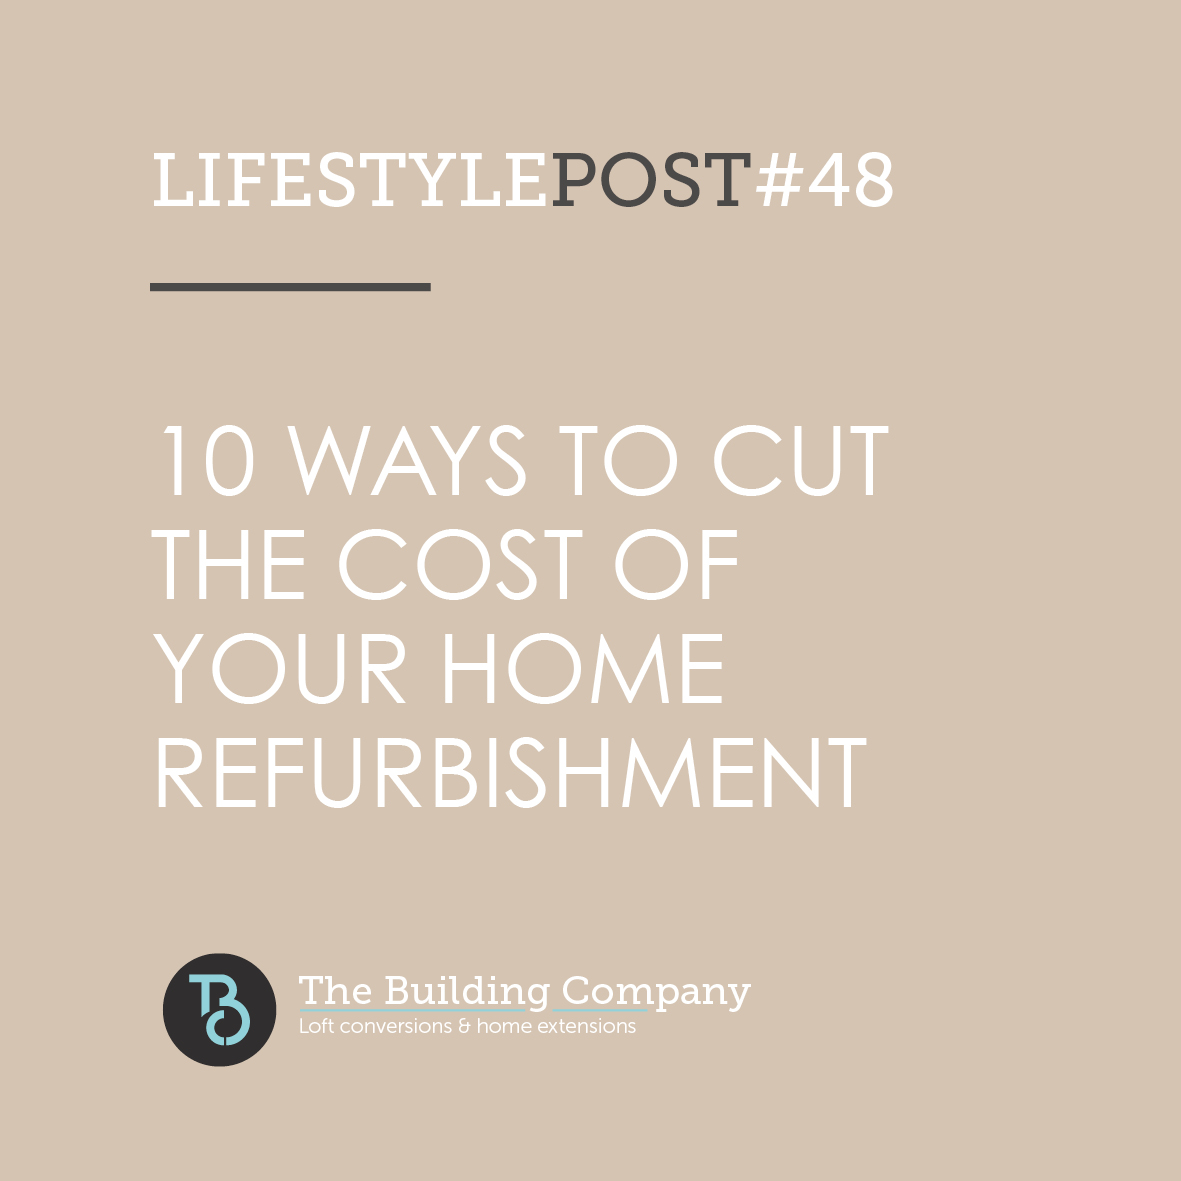 10 ways to cut the cost of your home refurbishment in East Finchley